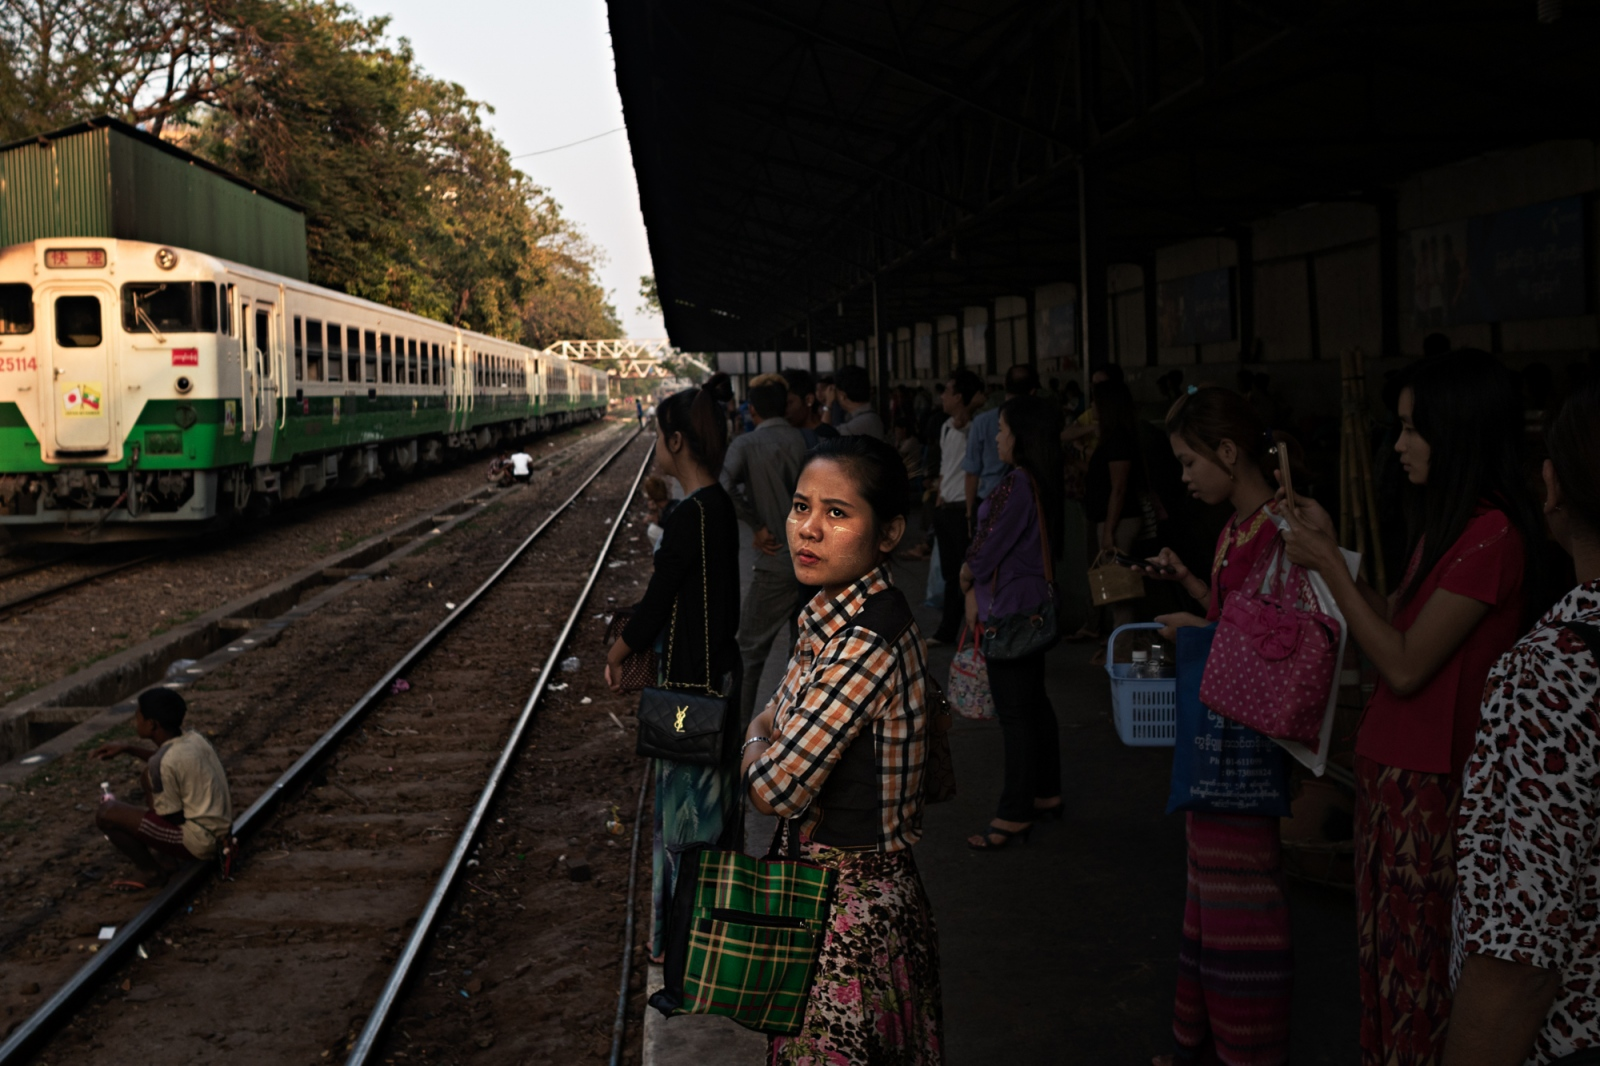 A young woman waits for the train at Bogyoke Aung San station in Yangon.